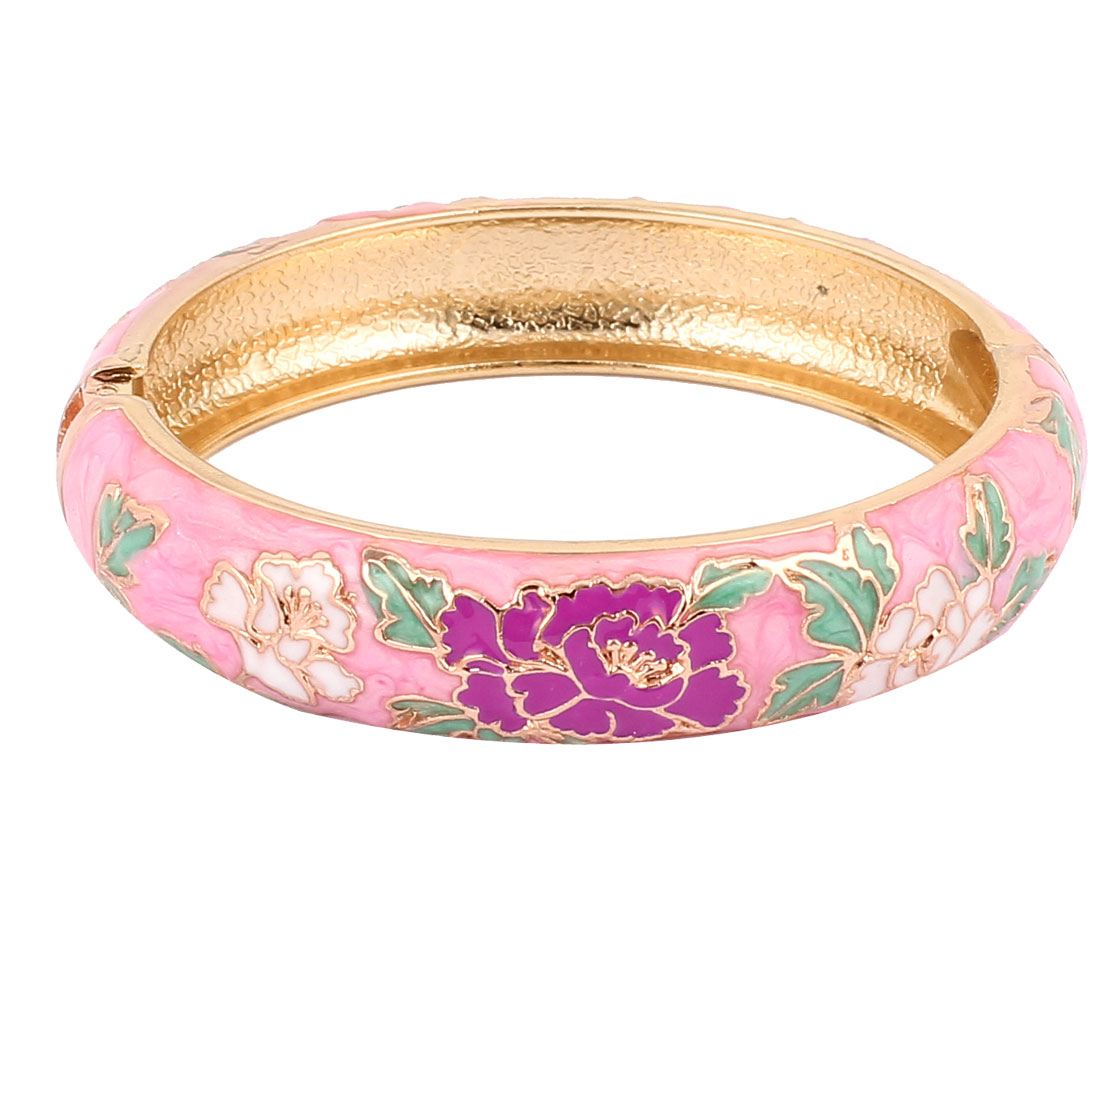 Lady Women Flower Carved Openable Enamel Bangle Bracelet Jewelry Gift Pink